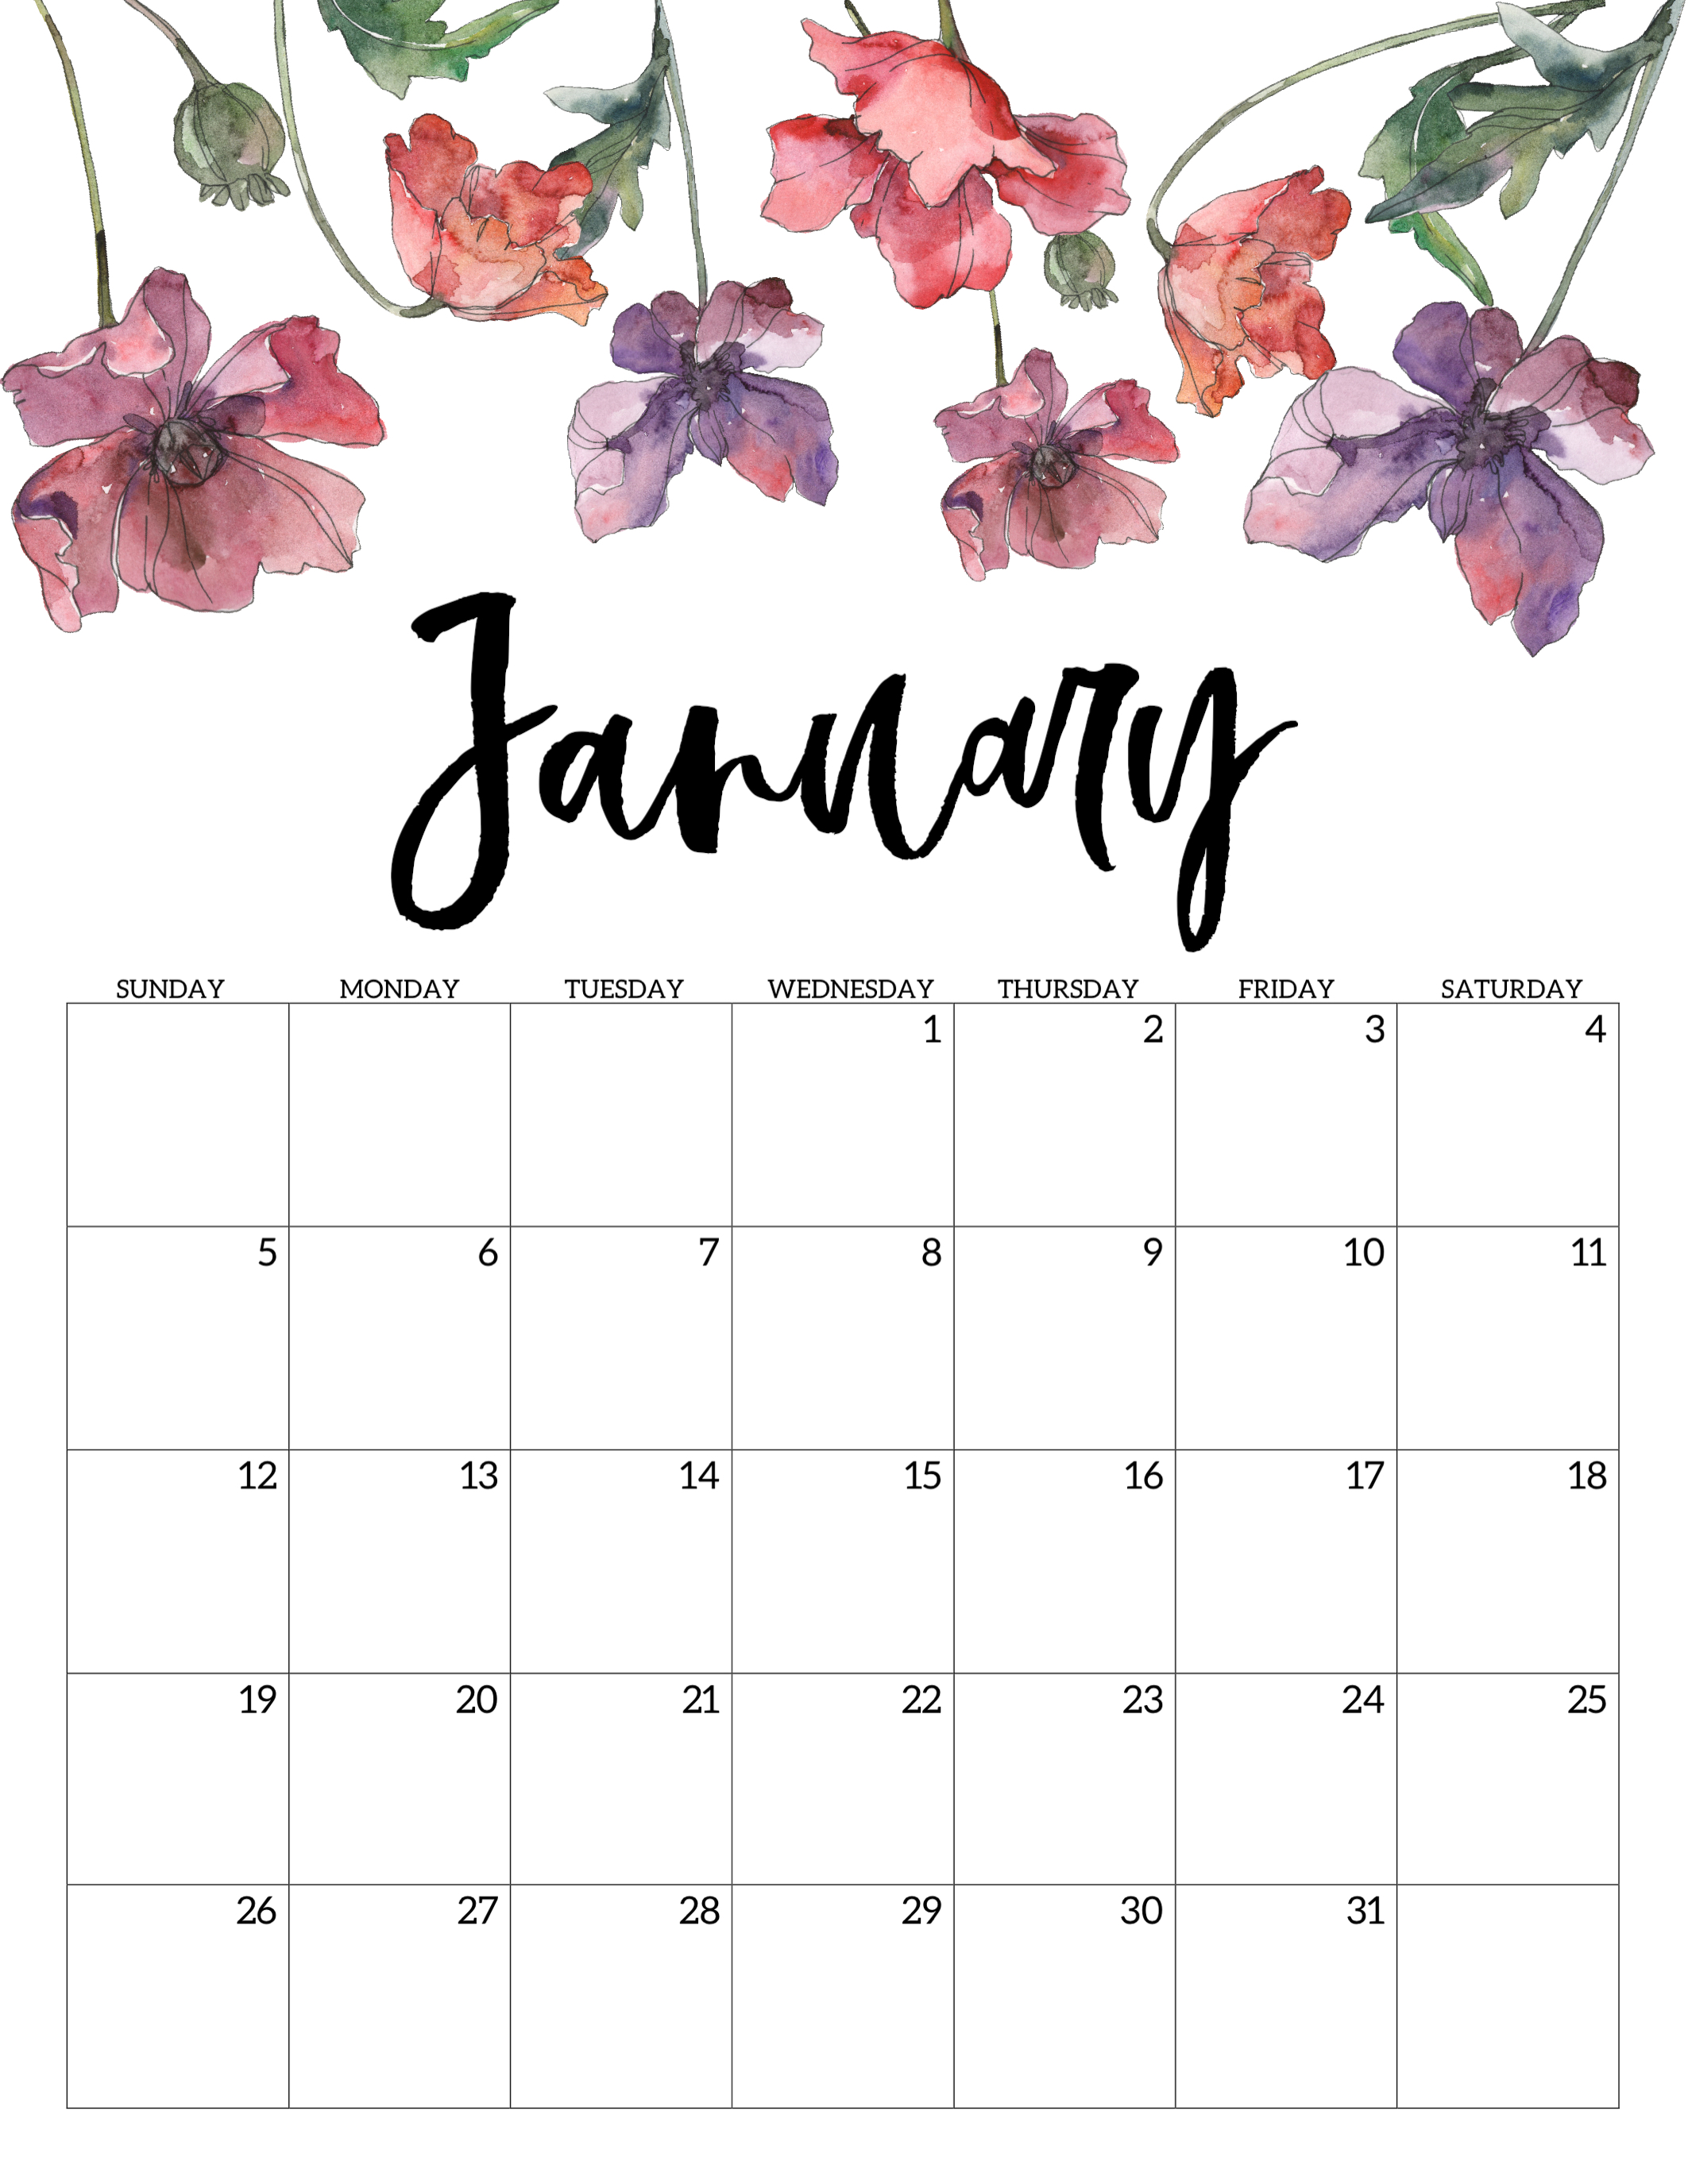 image about Calendar 2020 Printable named 2020 Free of charge Printable Calendar - Floral - Paper Path Style